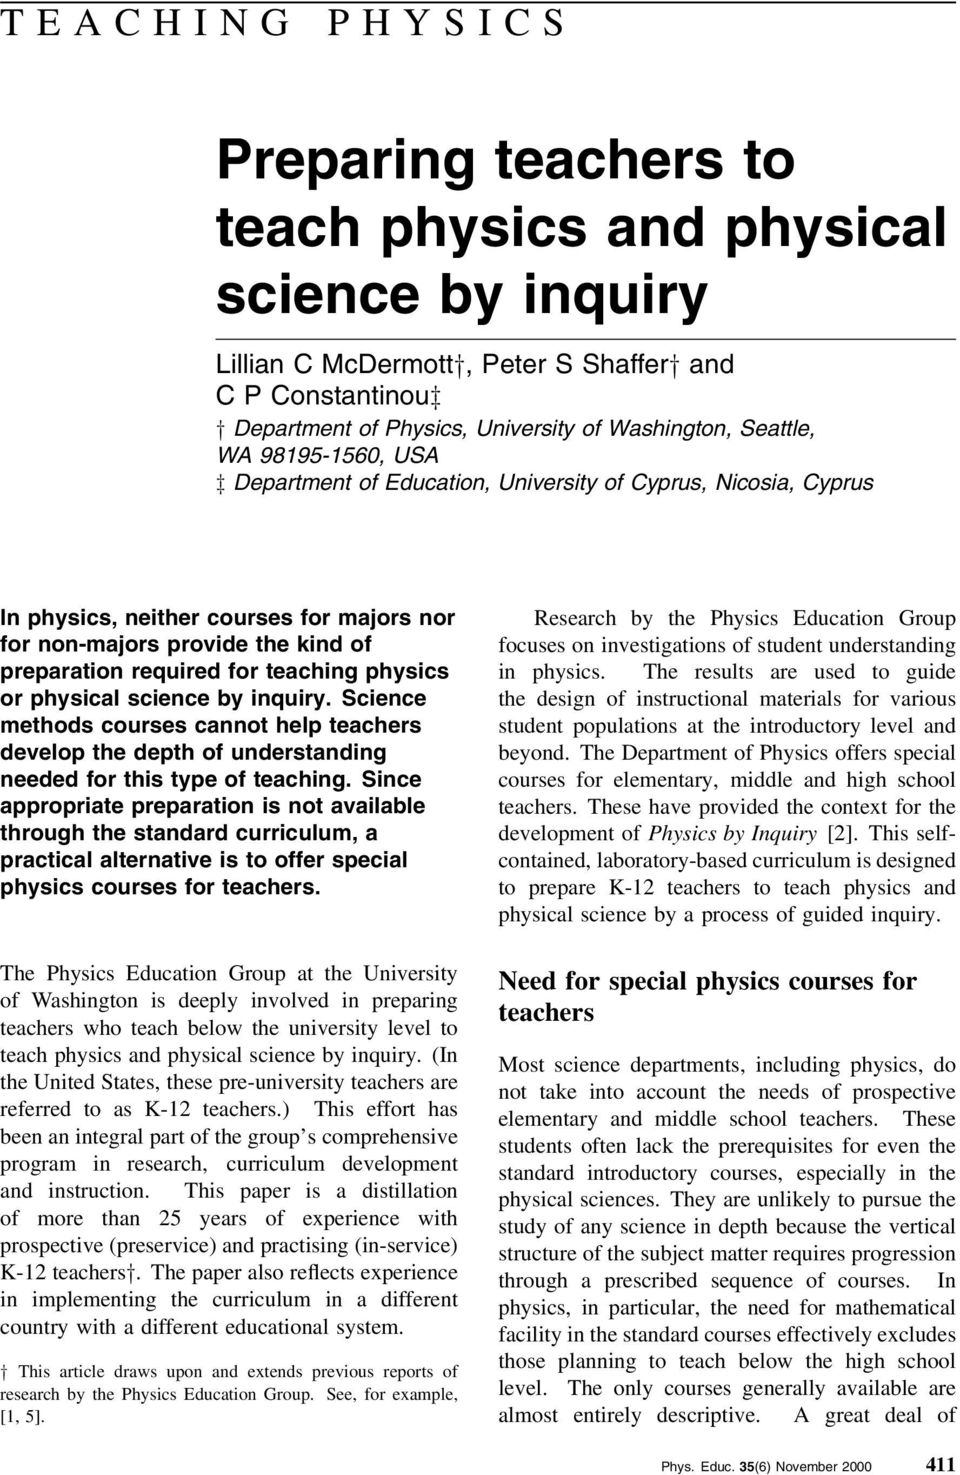 teaching physics or physical science by inquiry. Science methods courses cannot help teachers develop the depth of understanding needed for this type of teaching.